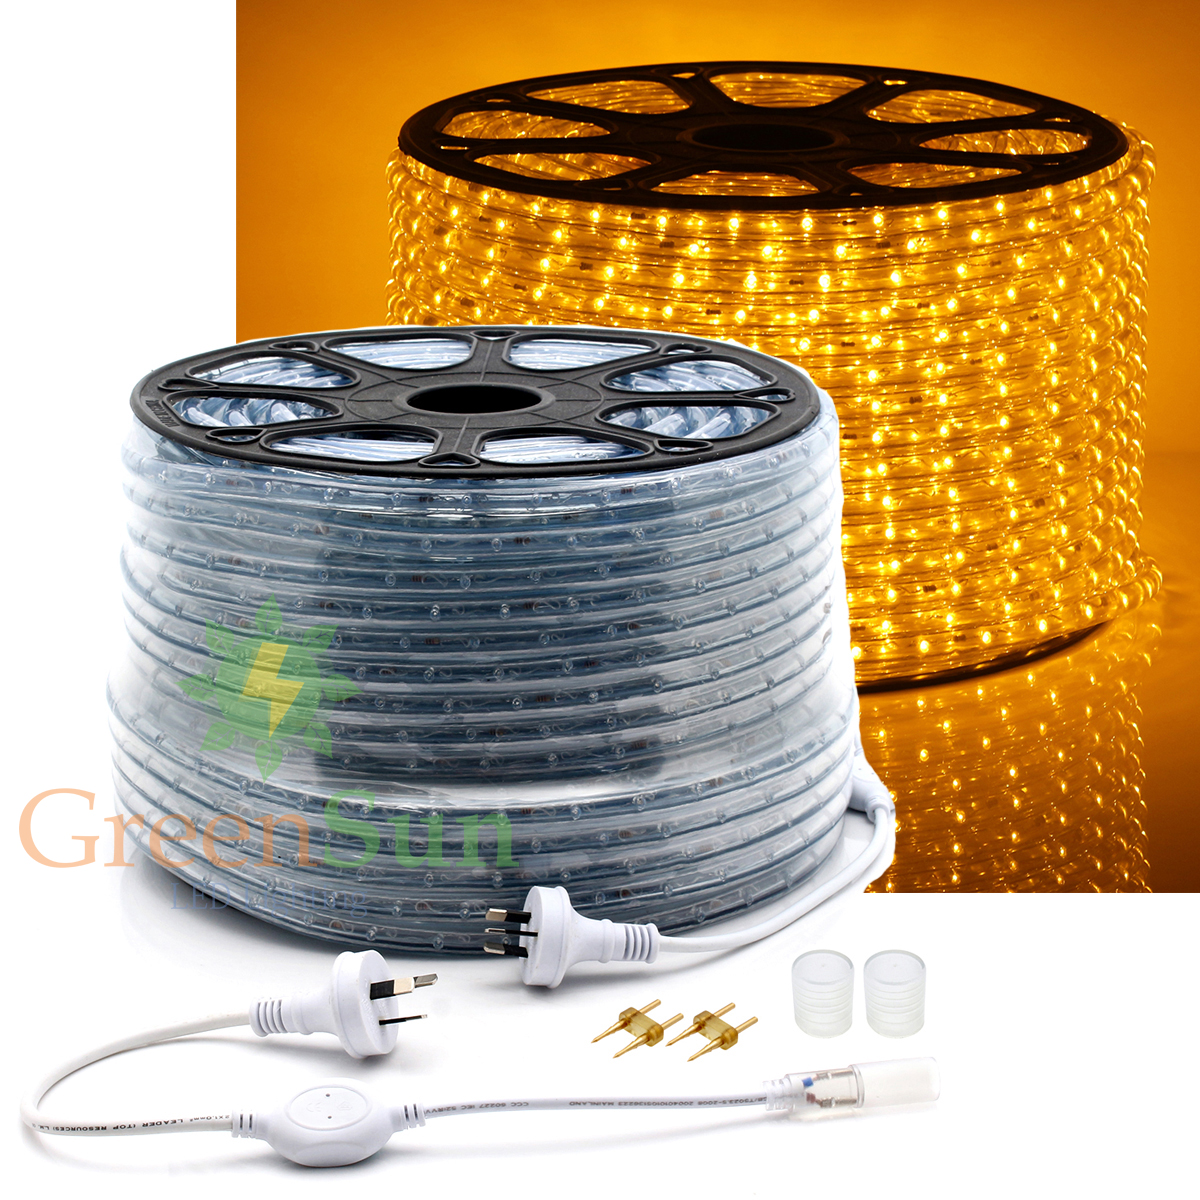 20-50M M36 leds/m 2-Wire Waterproof IP68 Yellow LED Strip Rope Light Home Garden Xmas Lamp LED Strip Light With Power line 0 9m smd 3528 90 leds waterproof led rope light festival lighting